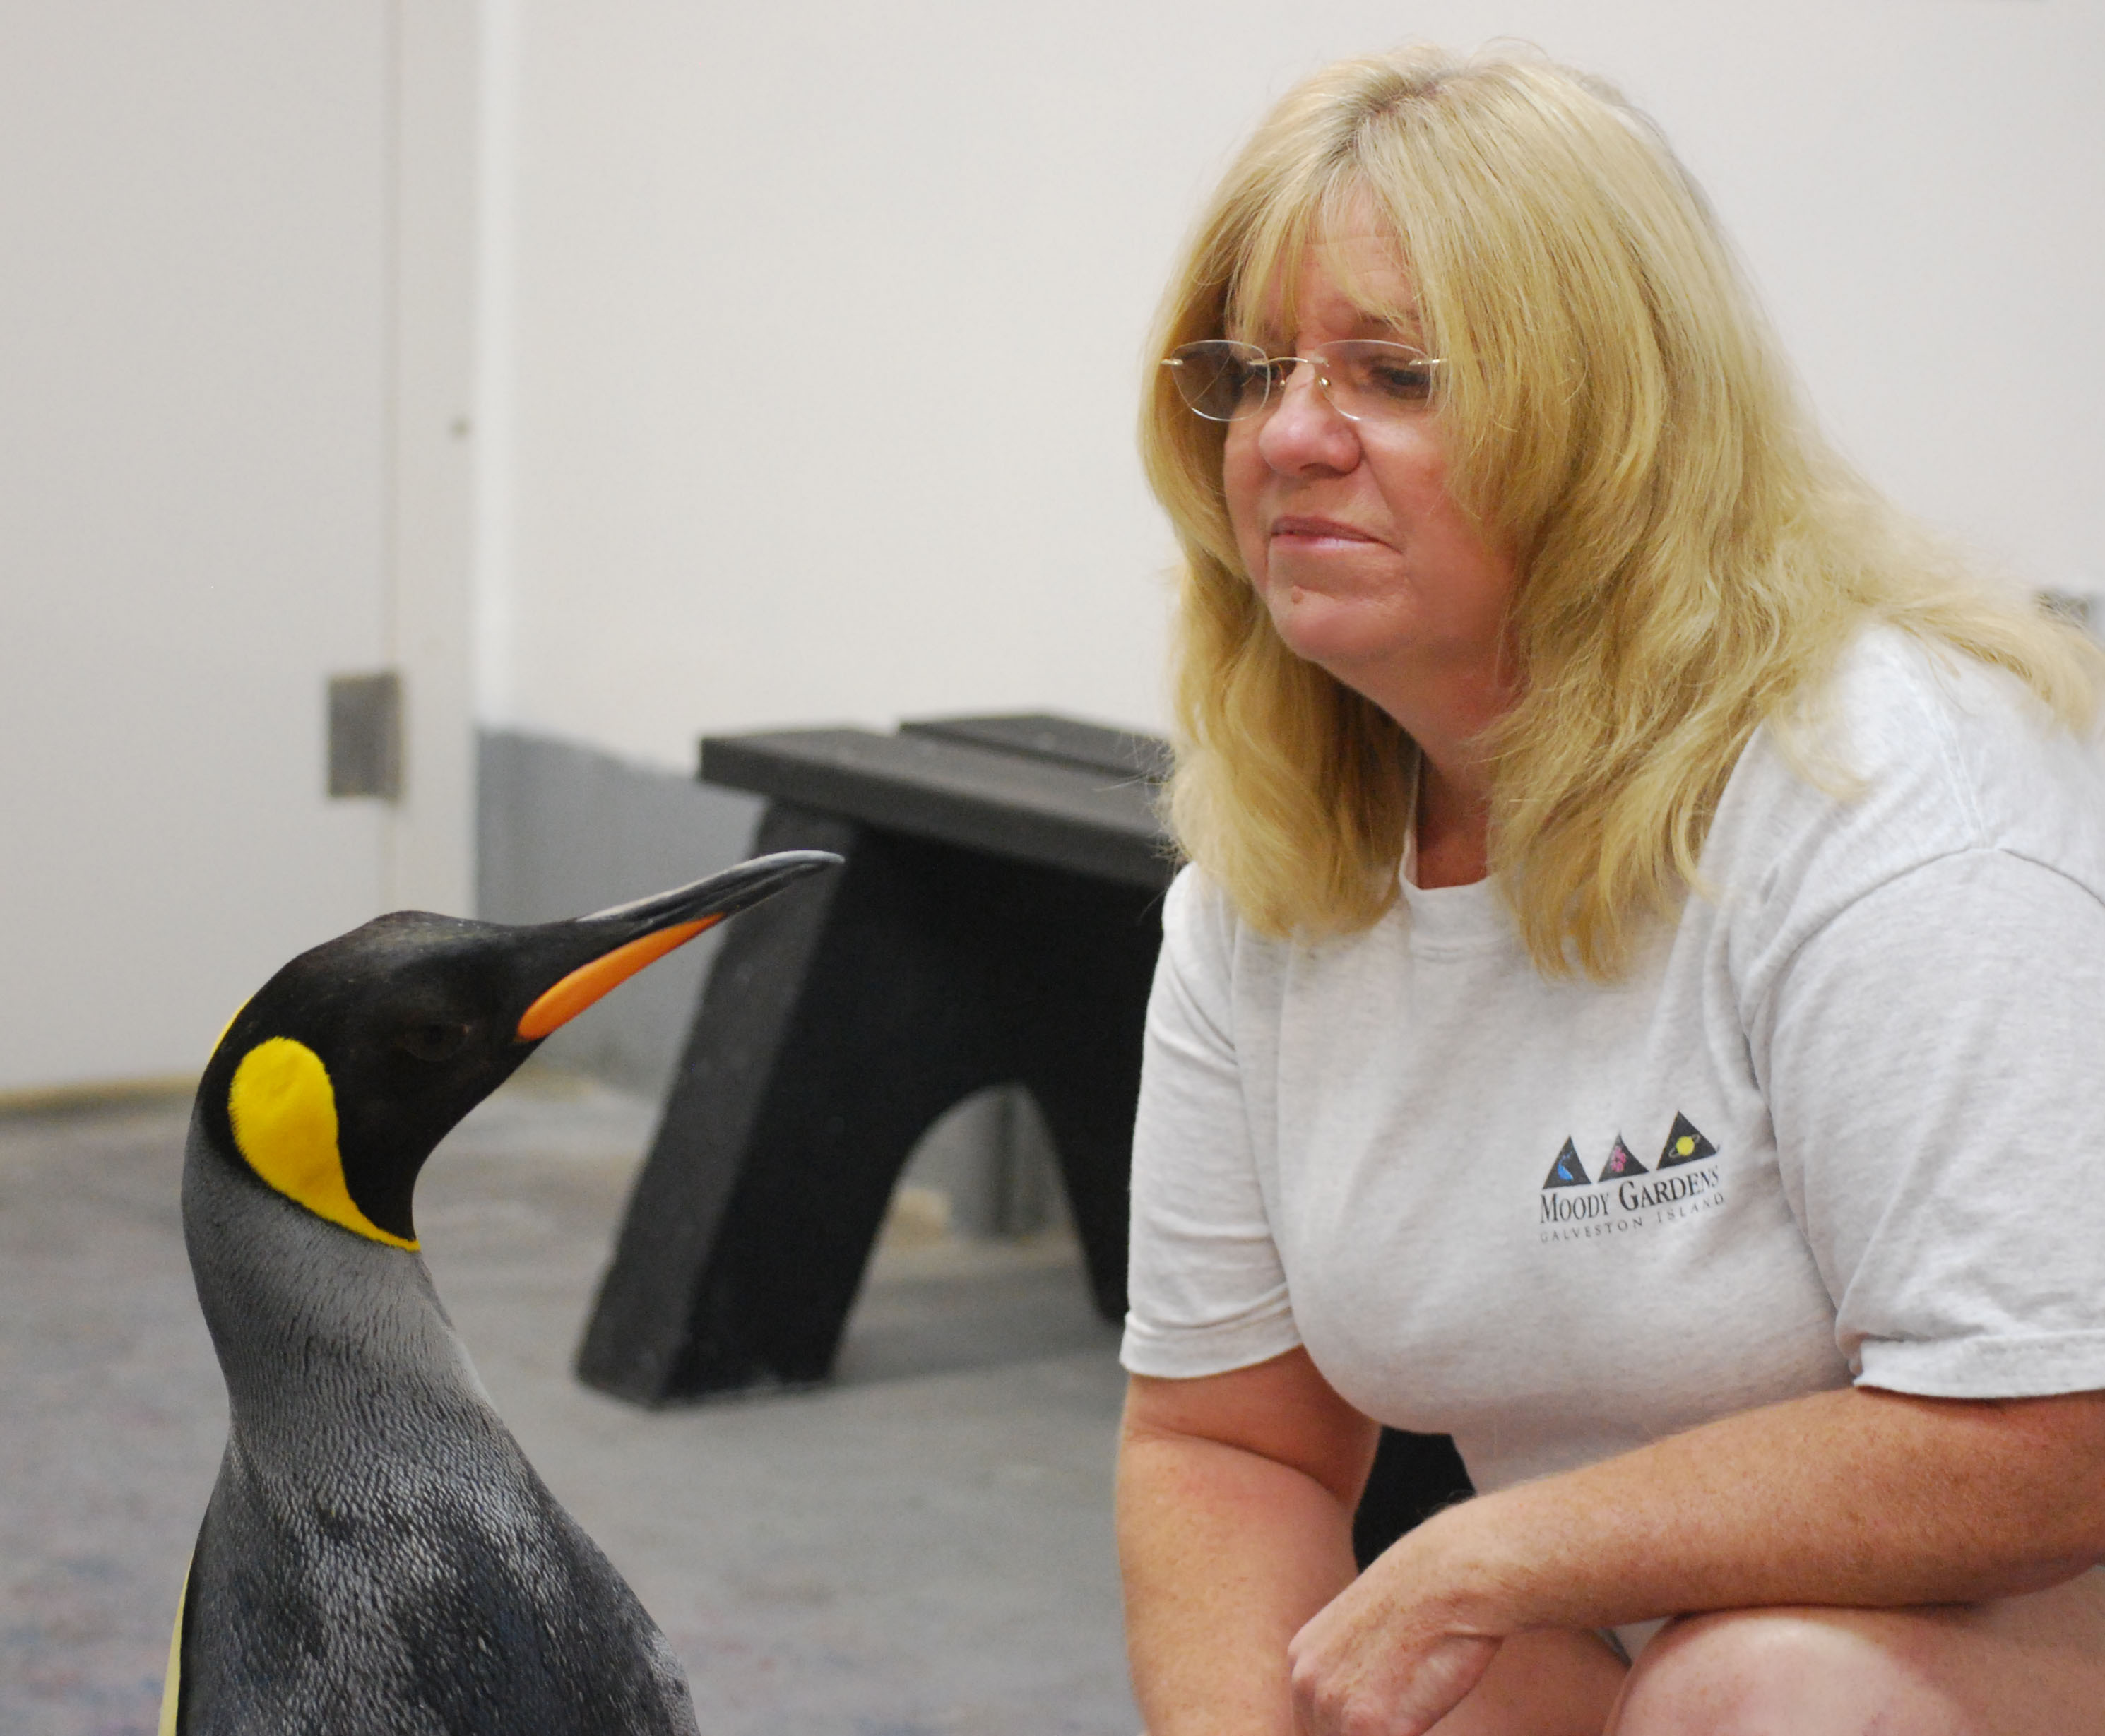 MOODY GARDENS CURATOR RECEIVES AWARD FOR WILDLIFE RESCUE EFFORTS